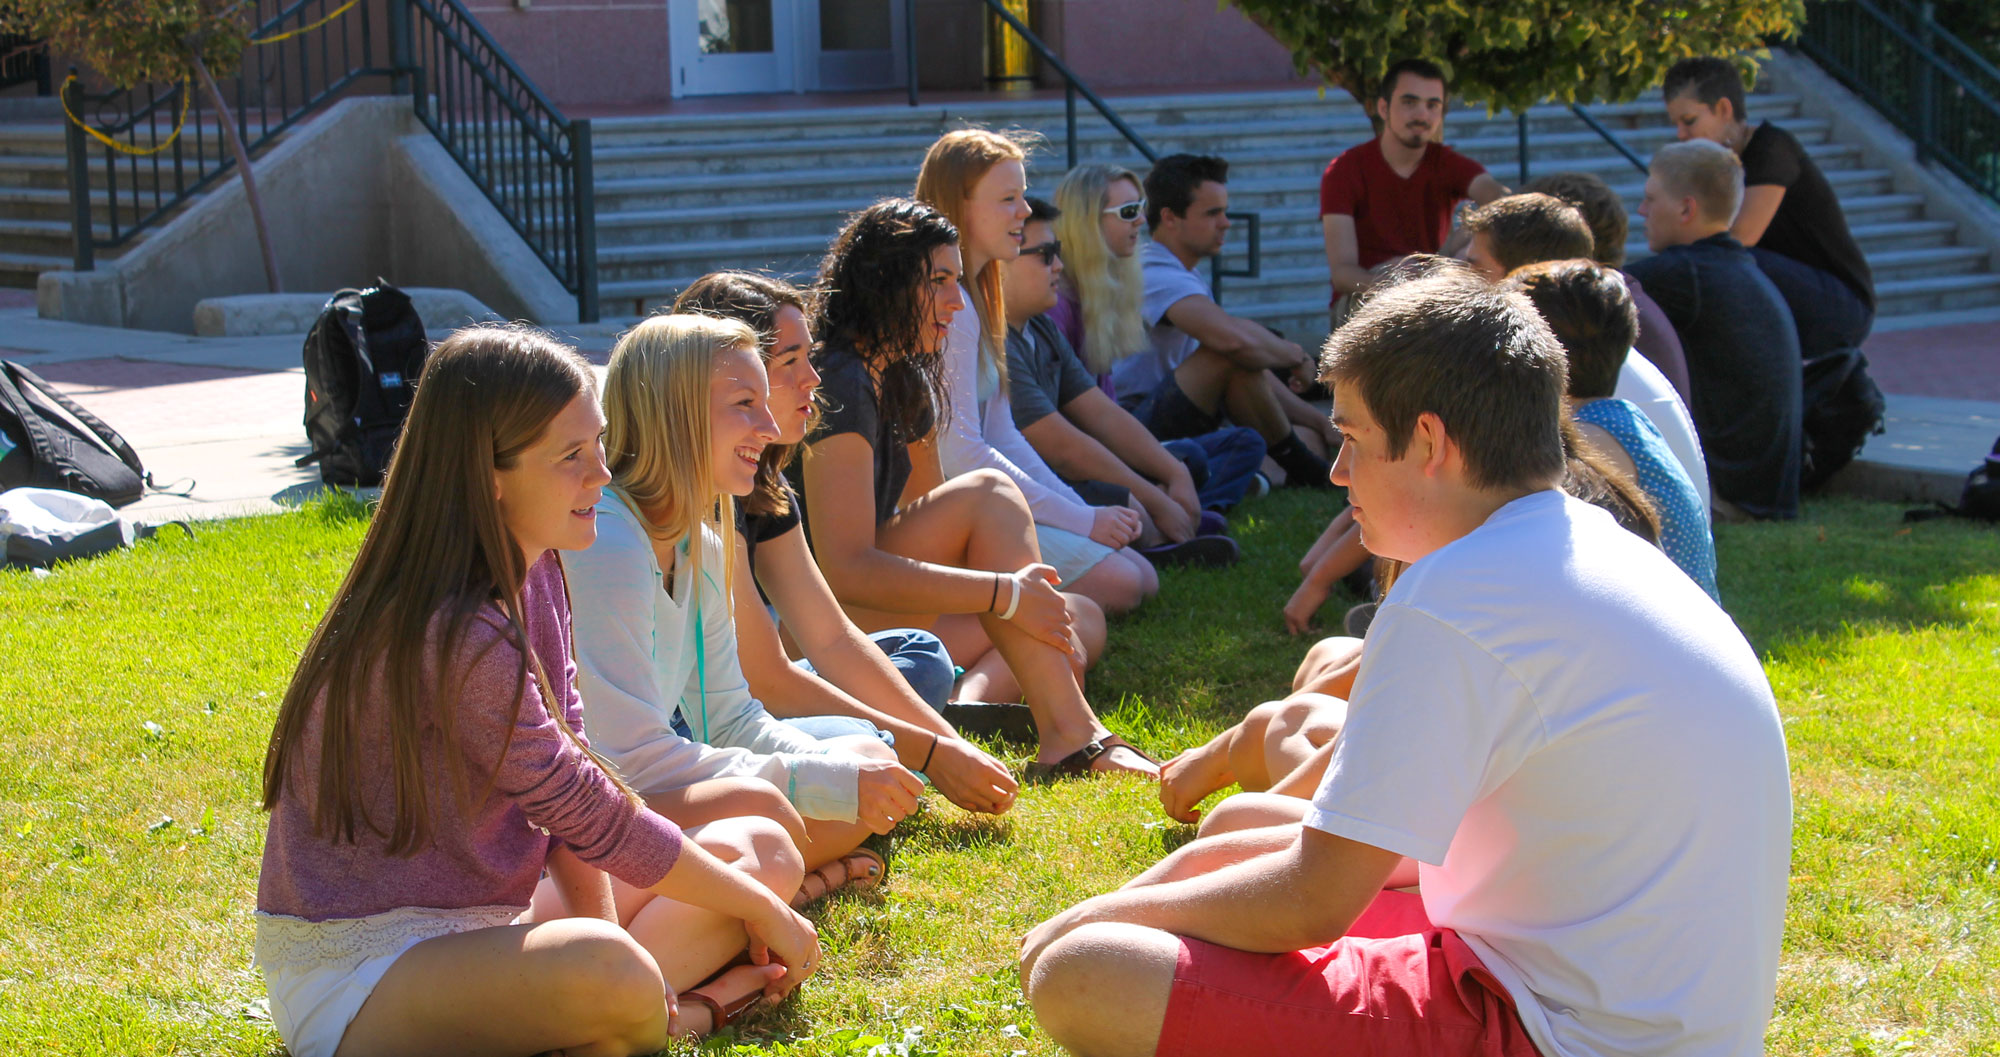 Image of students sitting in grass on campus